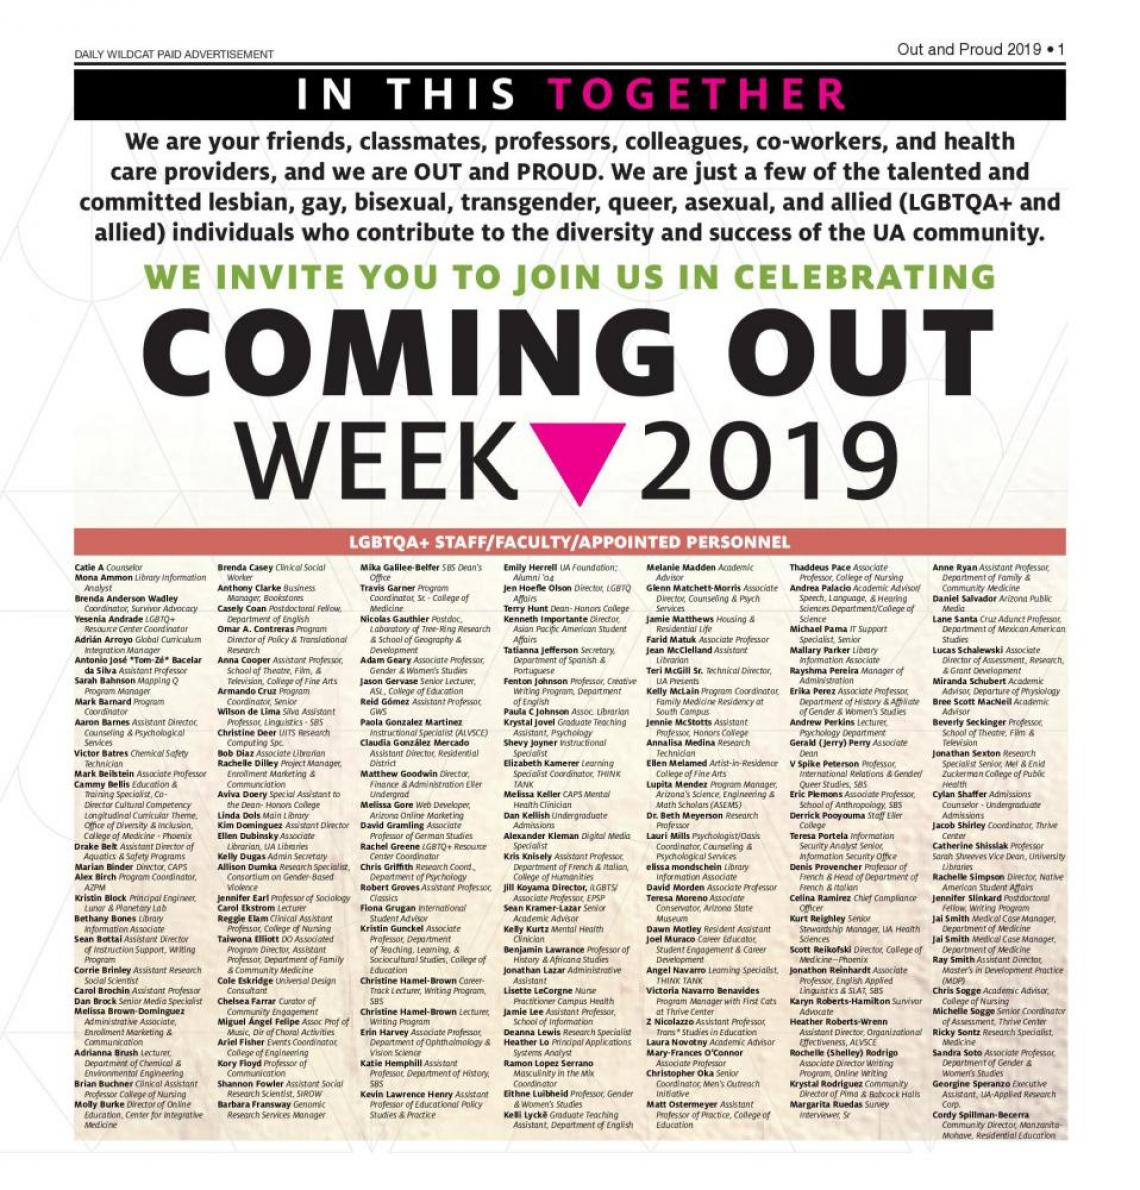 List full of faculty/staff who supported Coming Out Week 2019